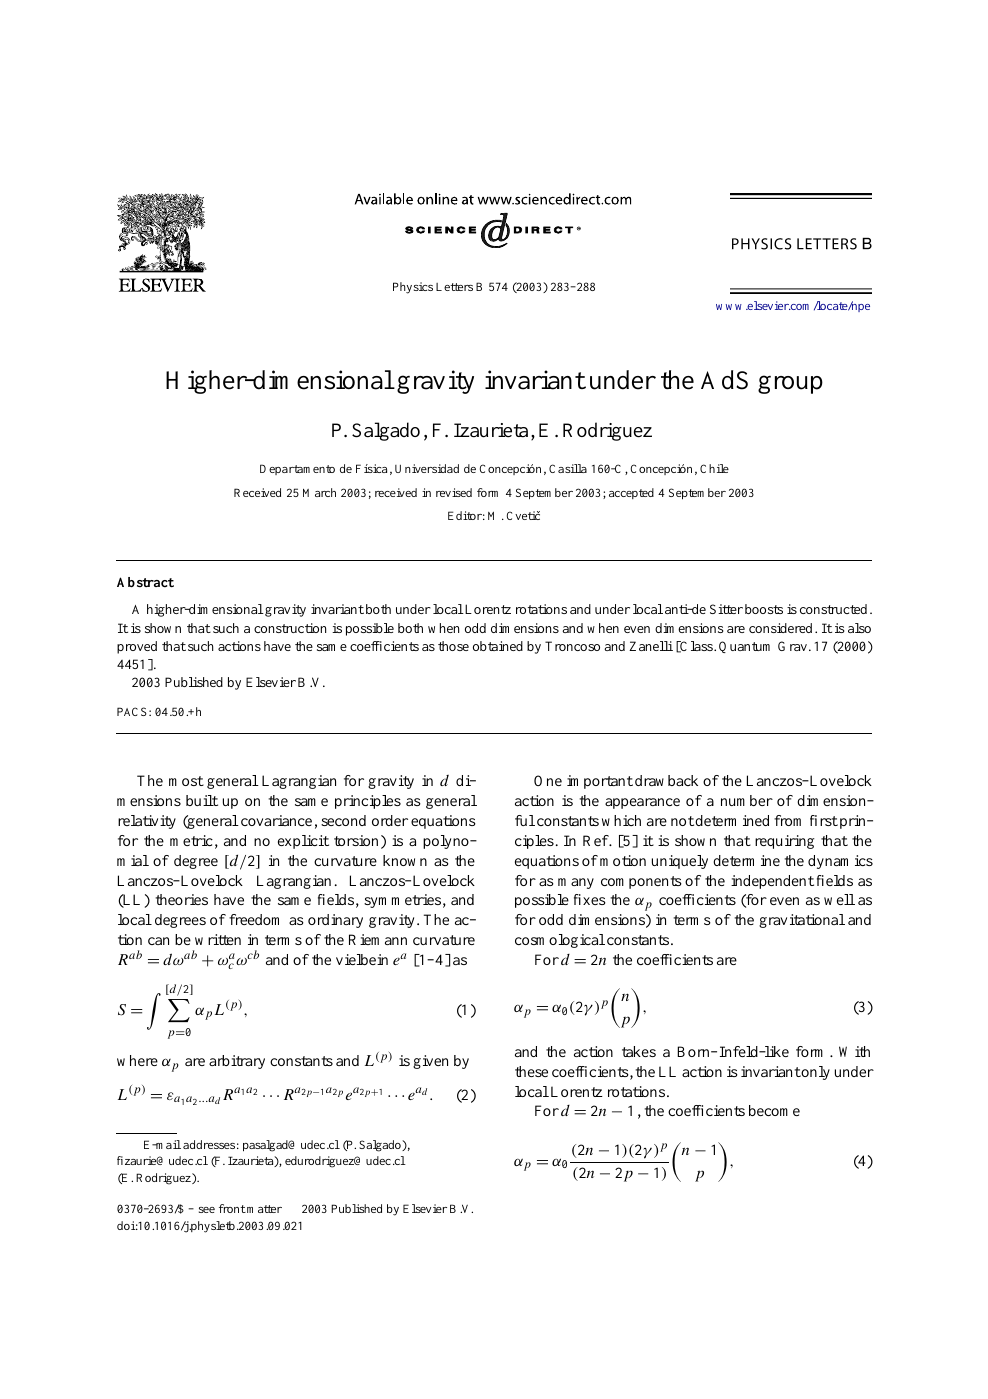 Higher-dimensional gravity invariant under the AdS group